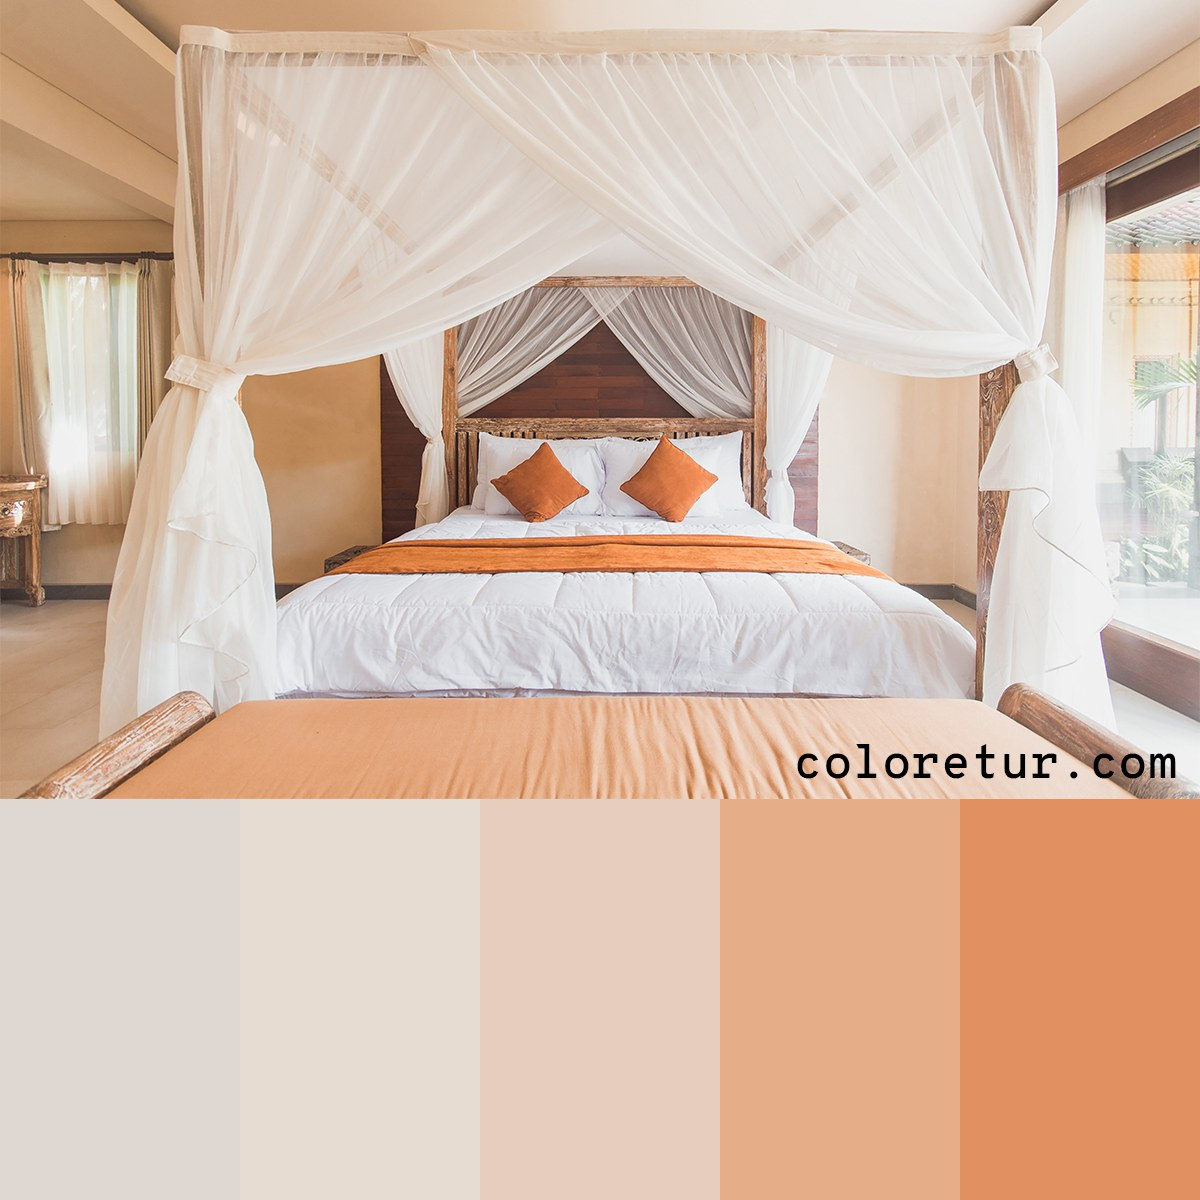 Warm, neutral tones create an inviting and comforting color palette